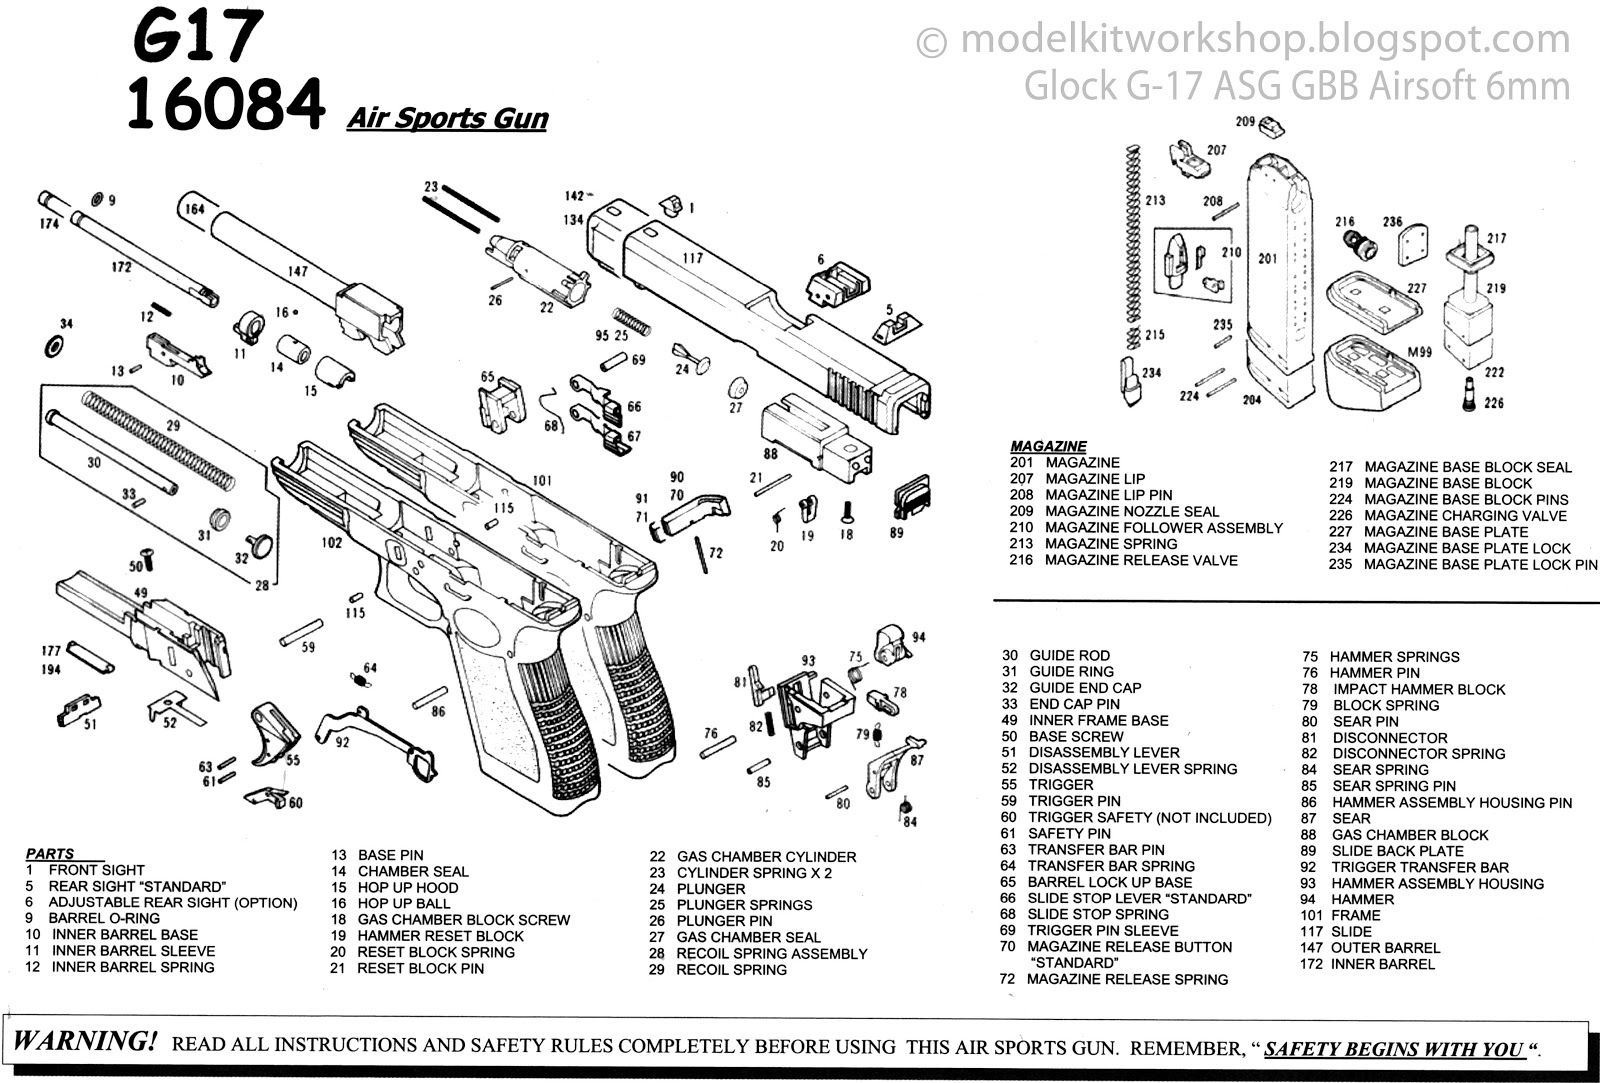 1911 Pistol Assembly Diagram Electrical Wiring Kimber Parts Model Glock Photo Free Engine Image For Breakdown With